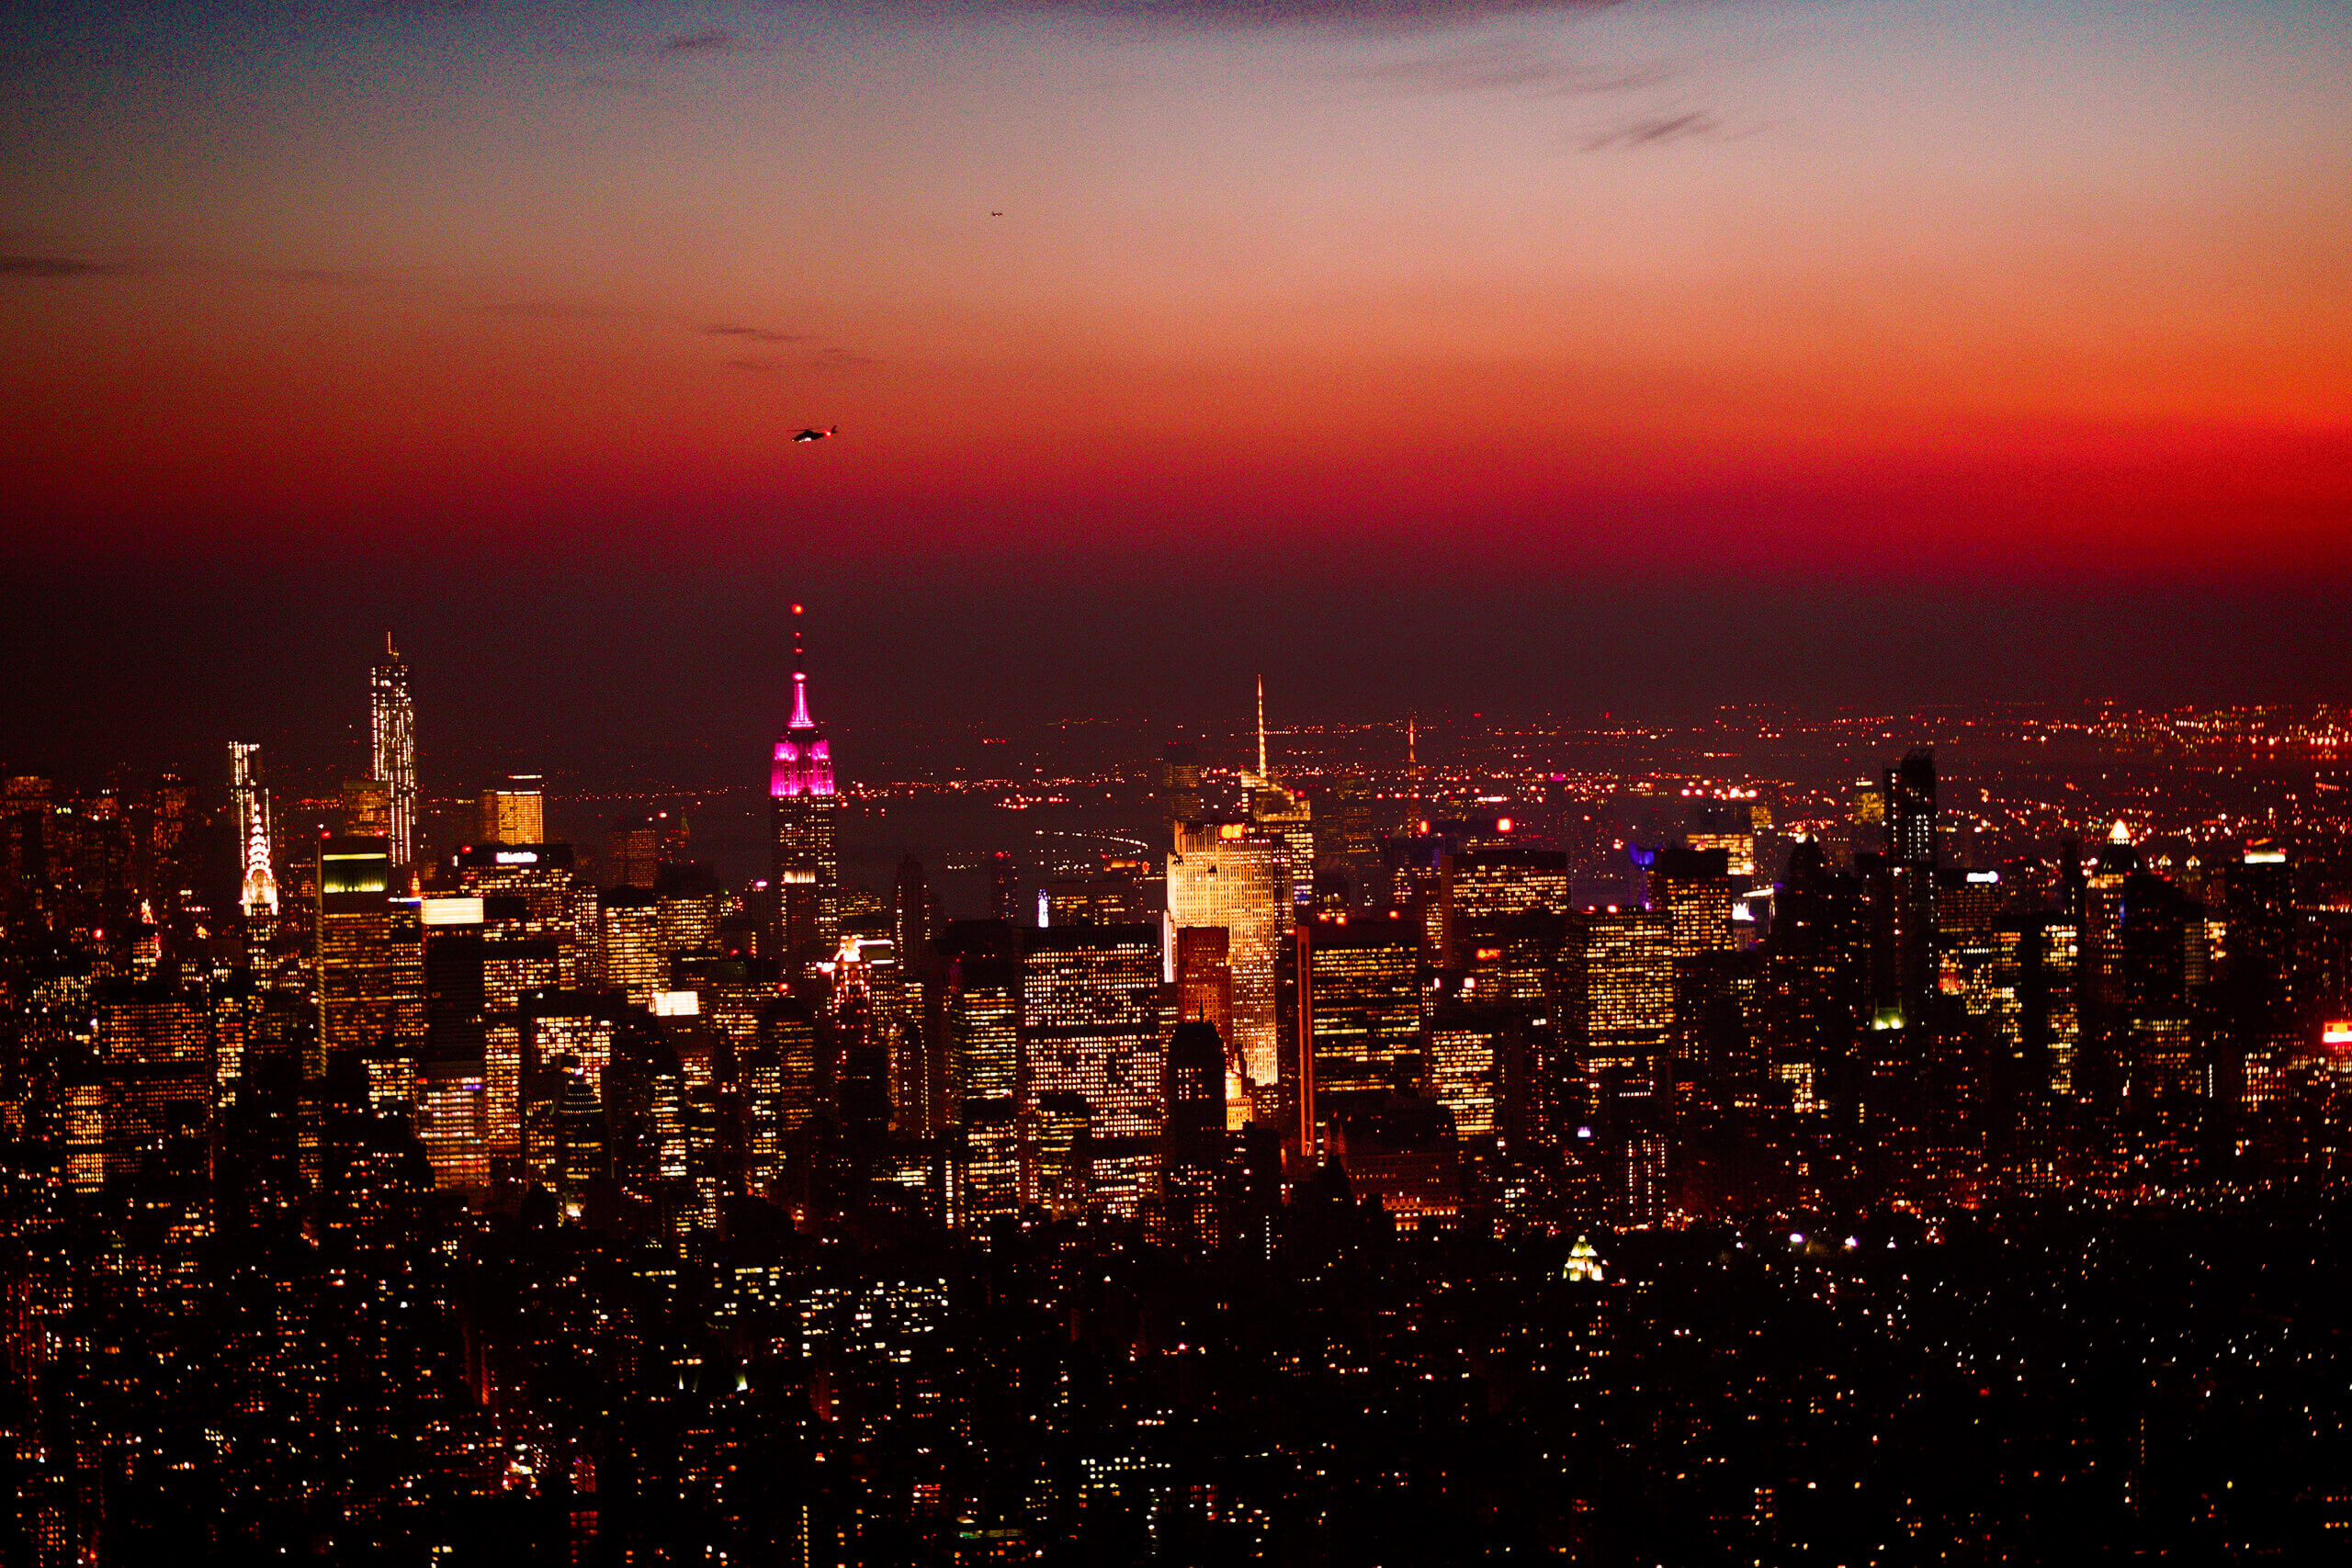 Aerial photo shot at night in New York City, NYC featuring the Empire State Building and Central Park